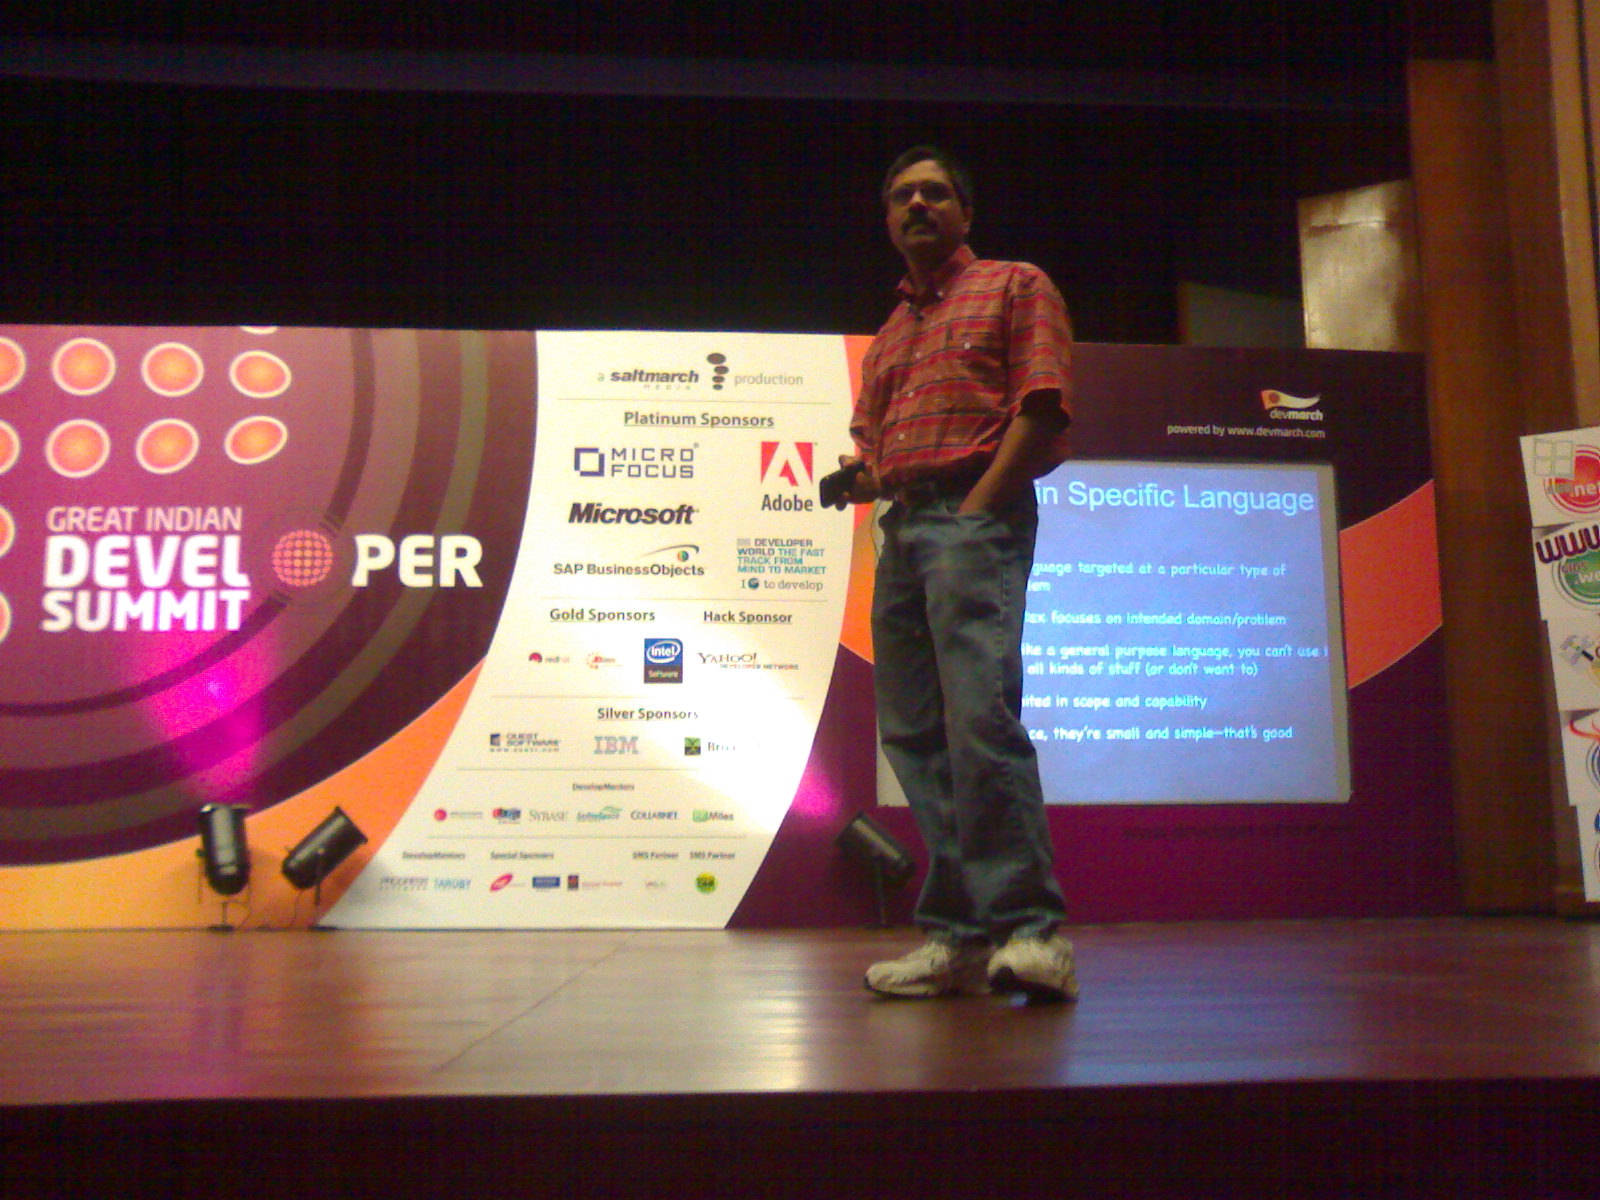 DSL workshop by Venkat